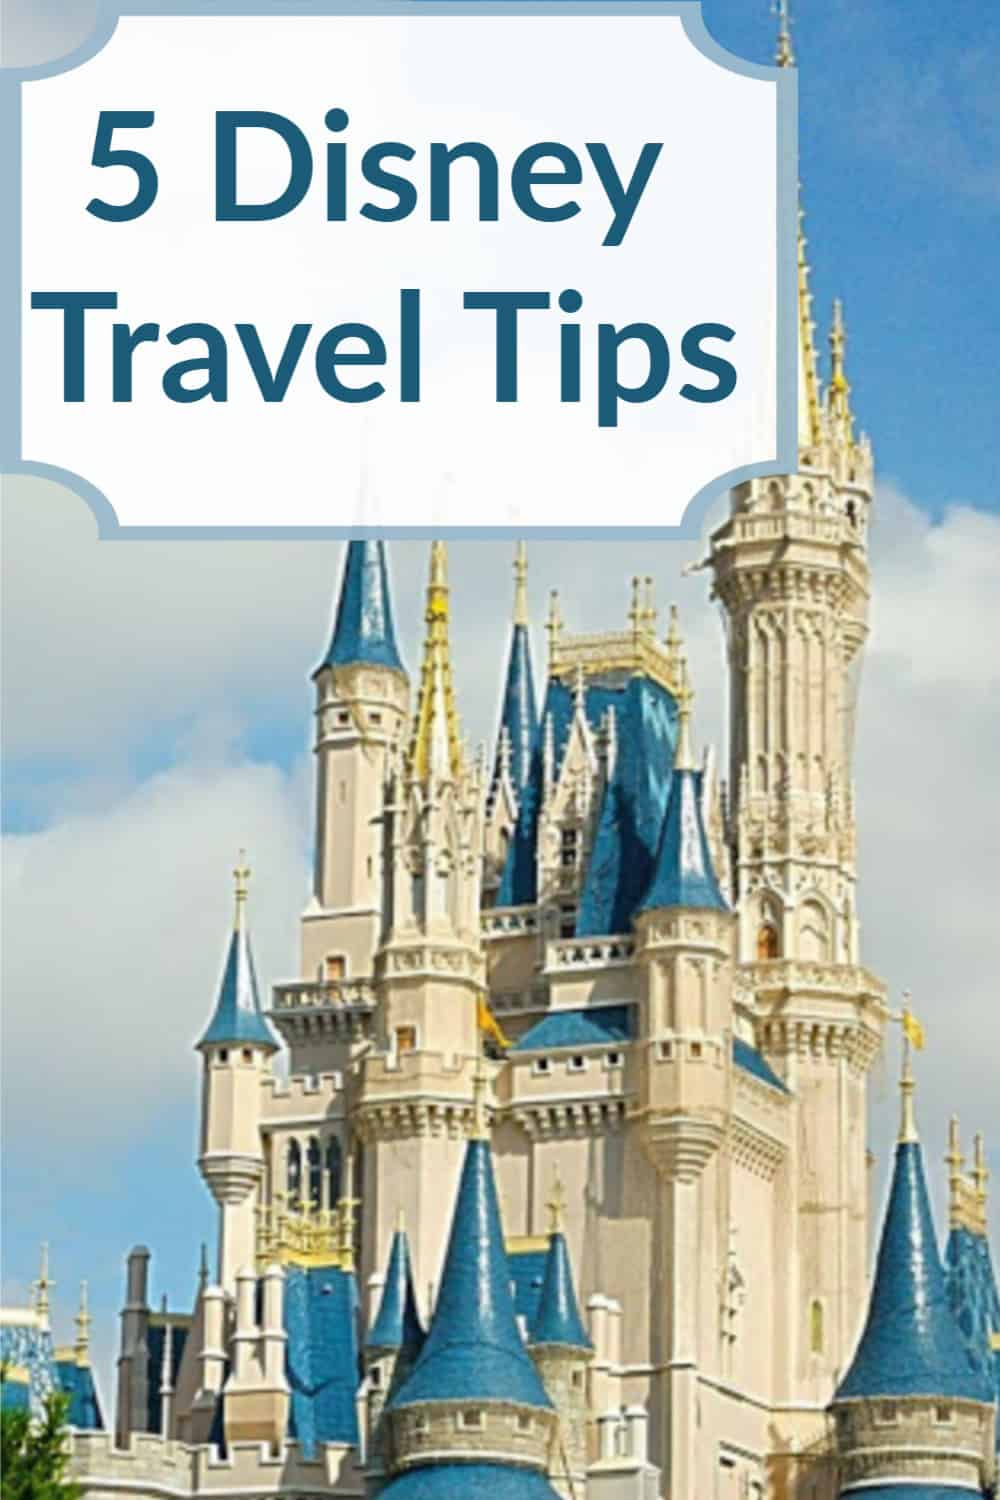 5 Disney travel tips for the Disney fan hoping to make the most of their Disney vacation.